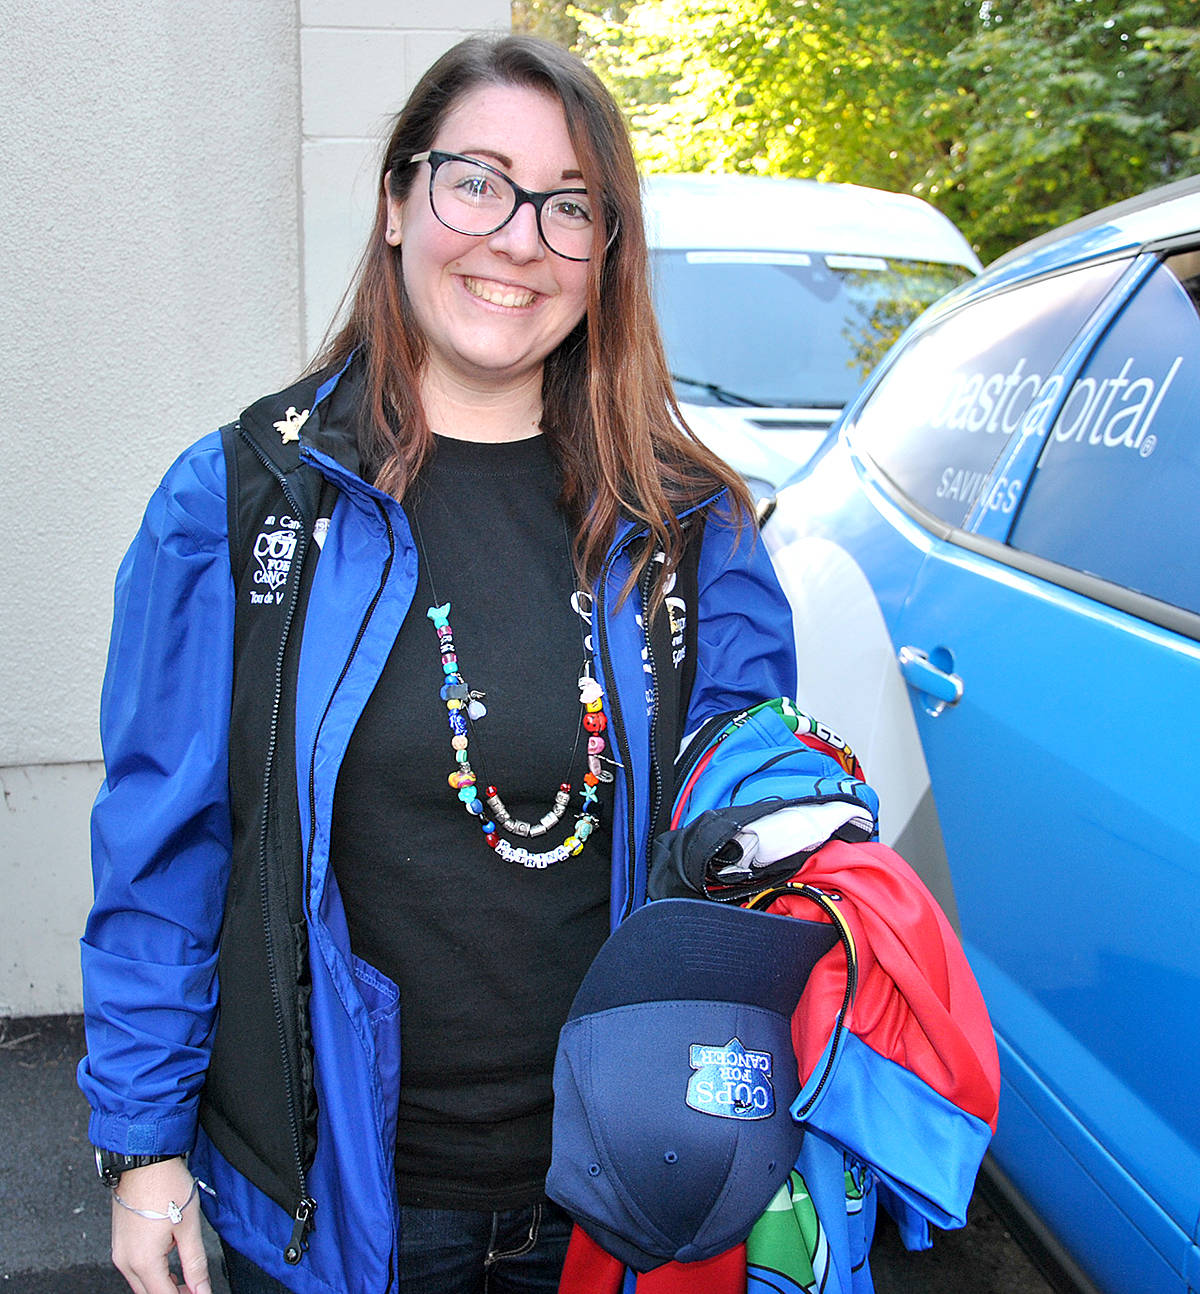 Katrina Lieberman returned to the Tour de Valley team agains this year, as one of the support team drivers with 2017 Cops for Cancer bike tour. (Roxanne Hooper/Langley Advance)